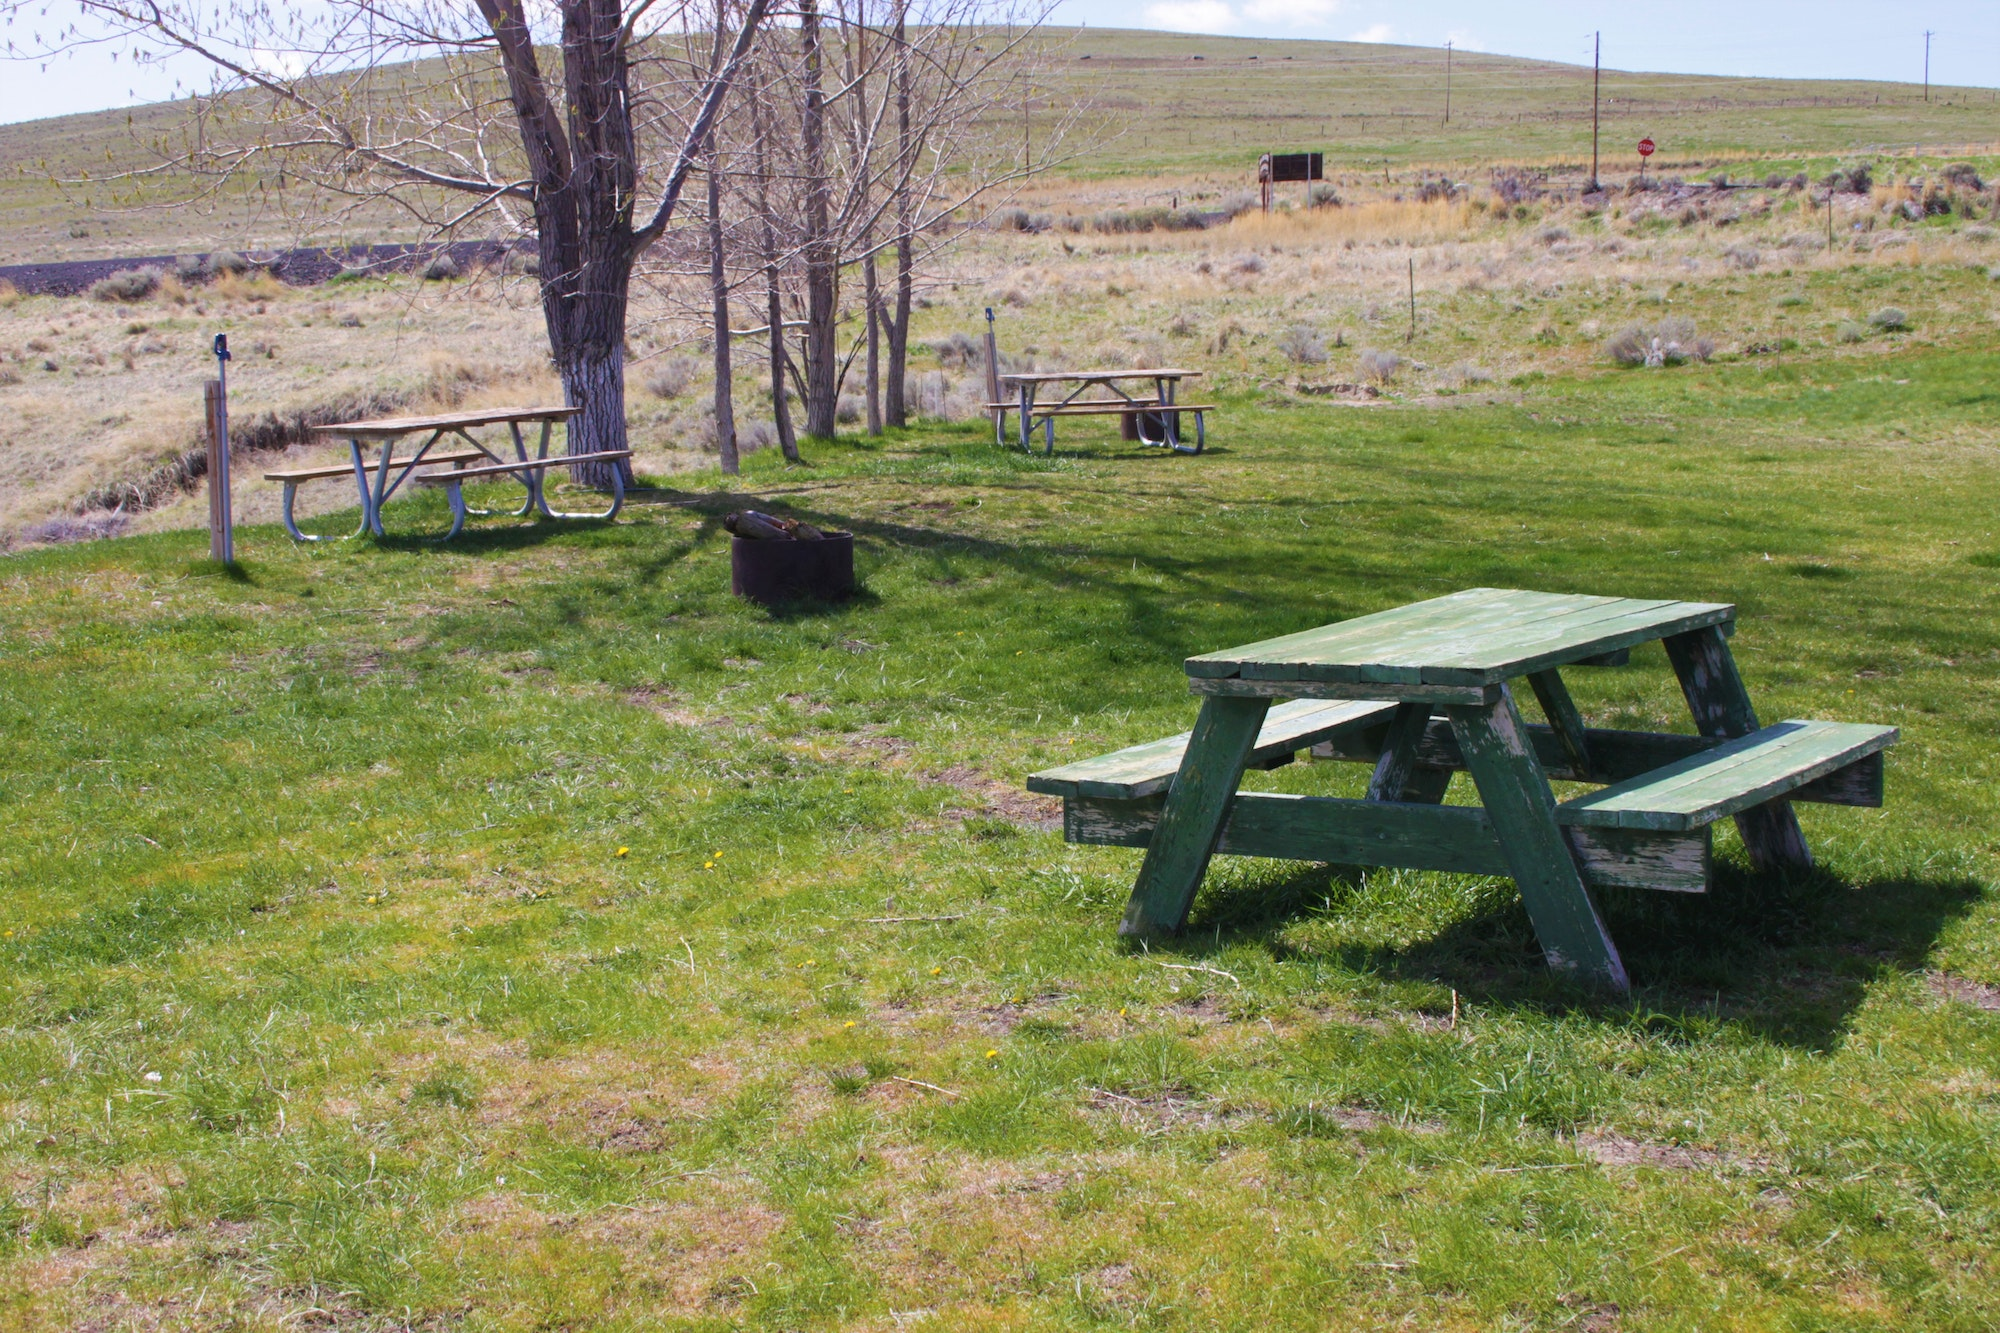 May contain: bench, furniture, grass, plant, outdoors, meal, food, field, and nature